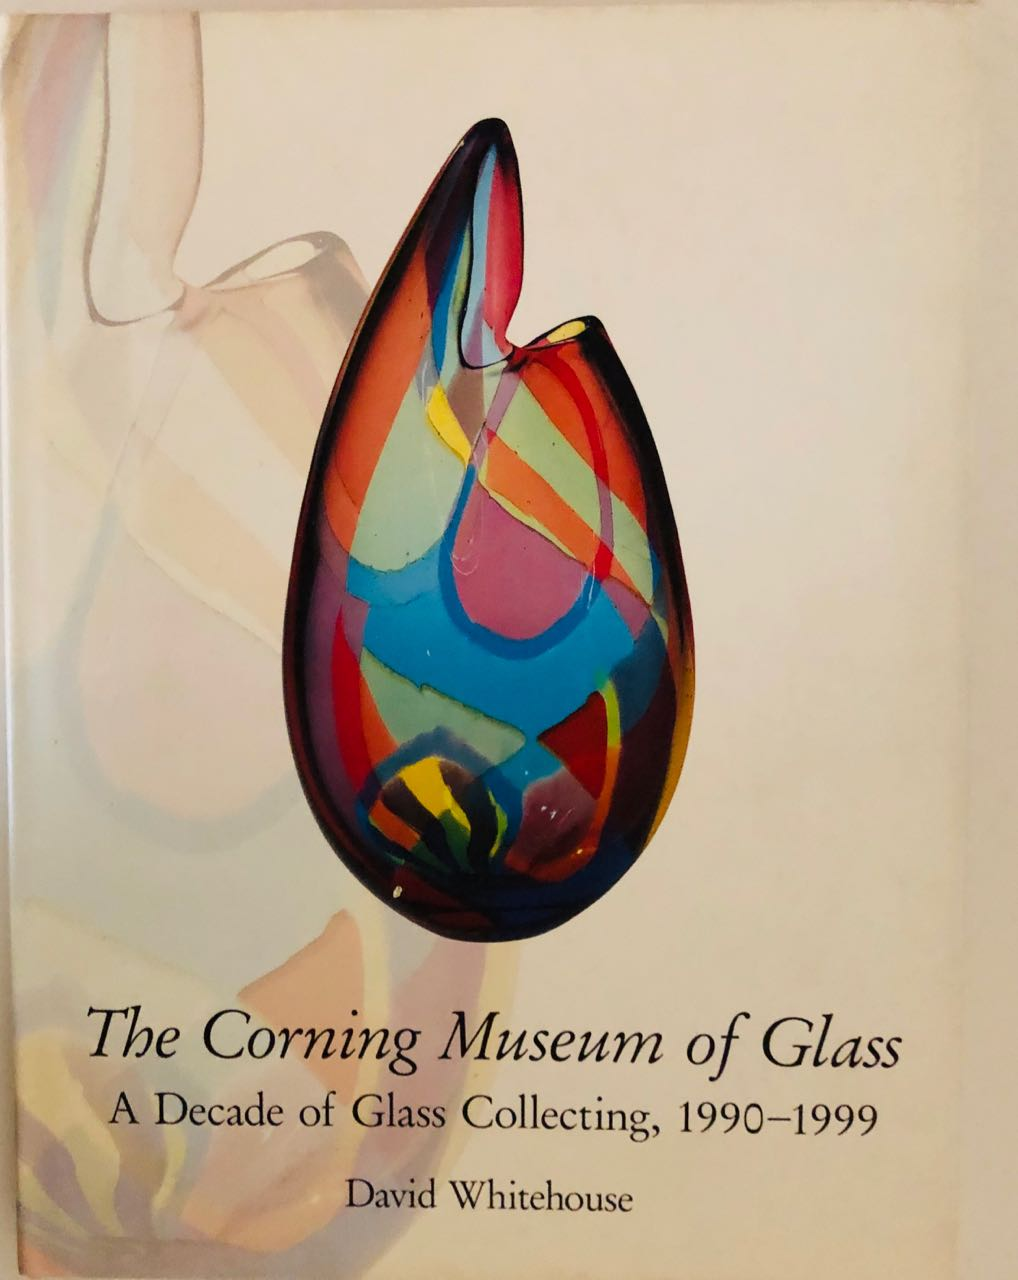 Image for The Corning Museum of Glass: A Decade of Glass Collecting, 1990-1999